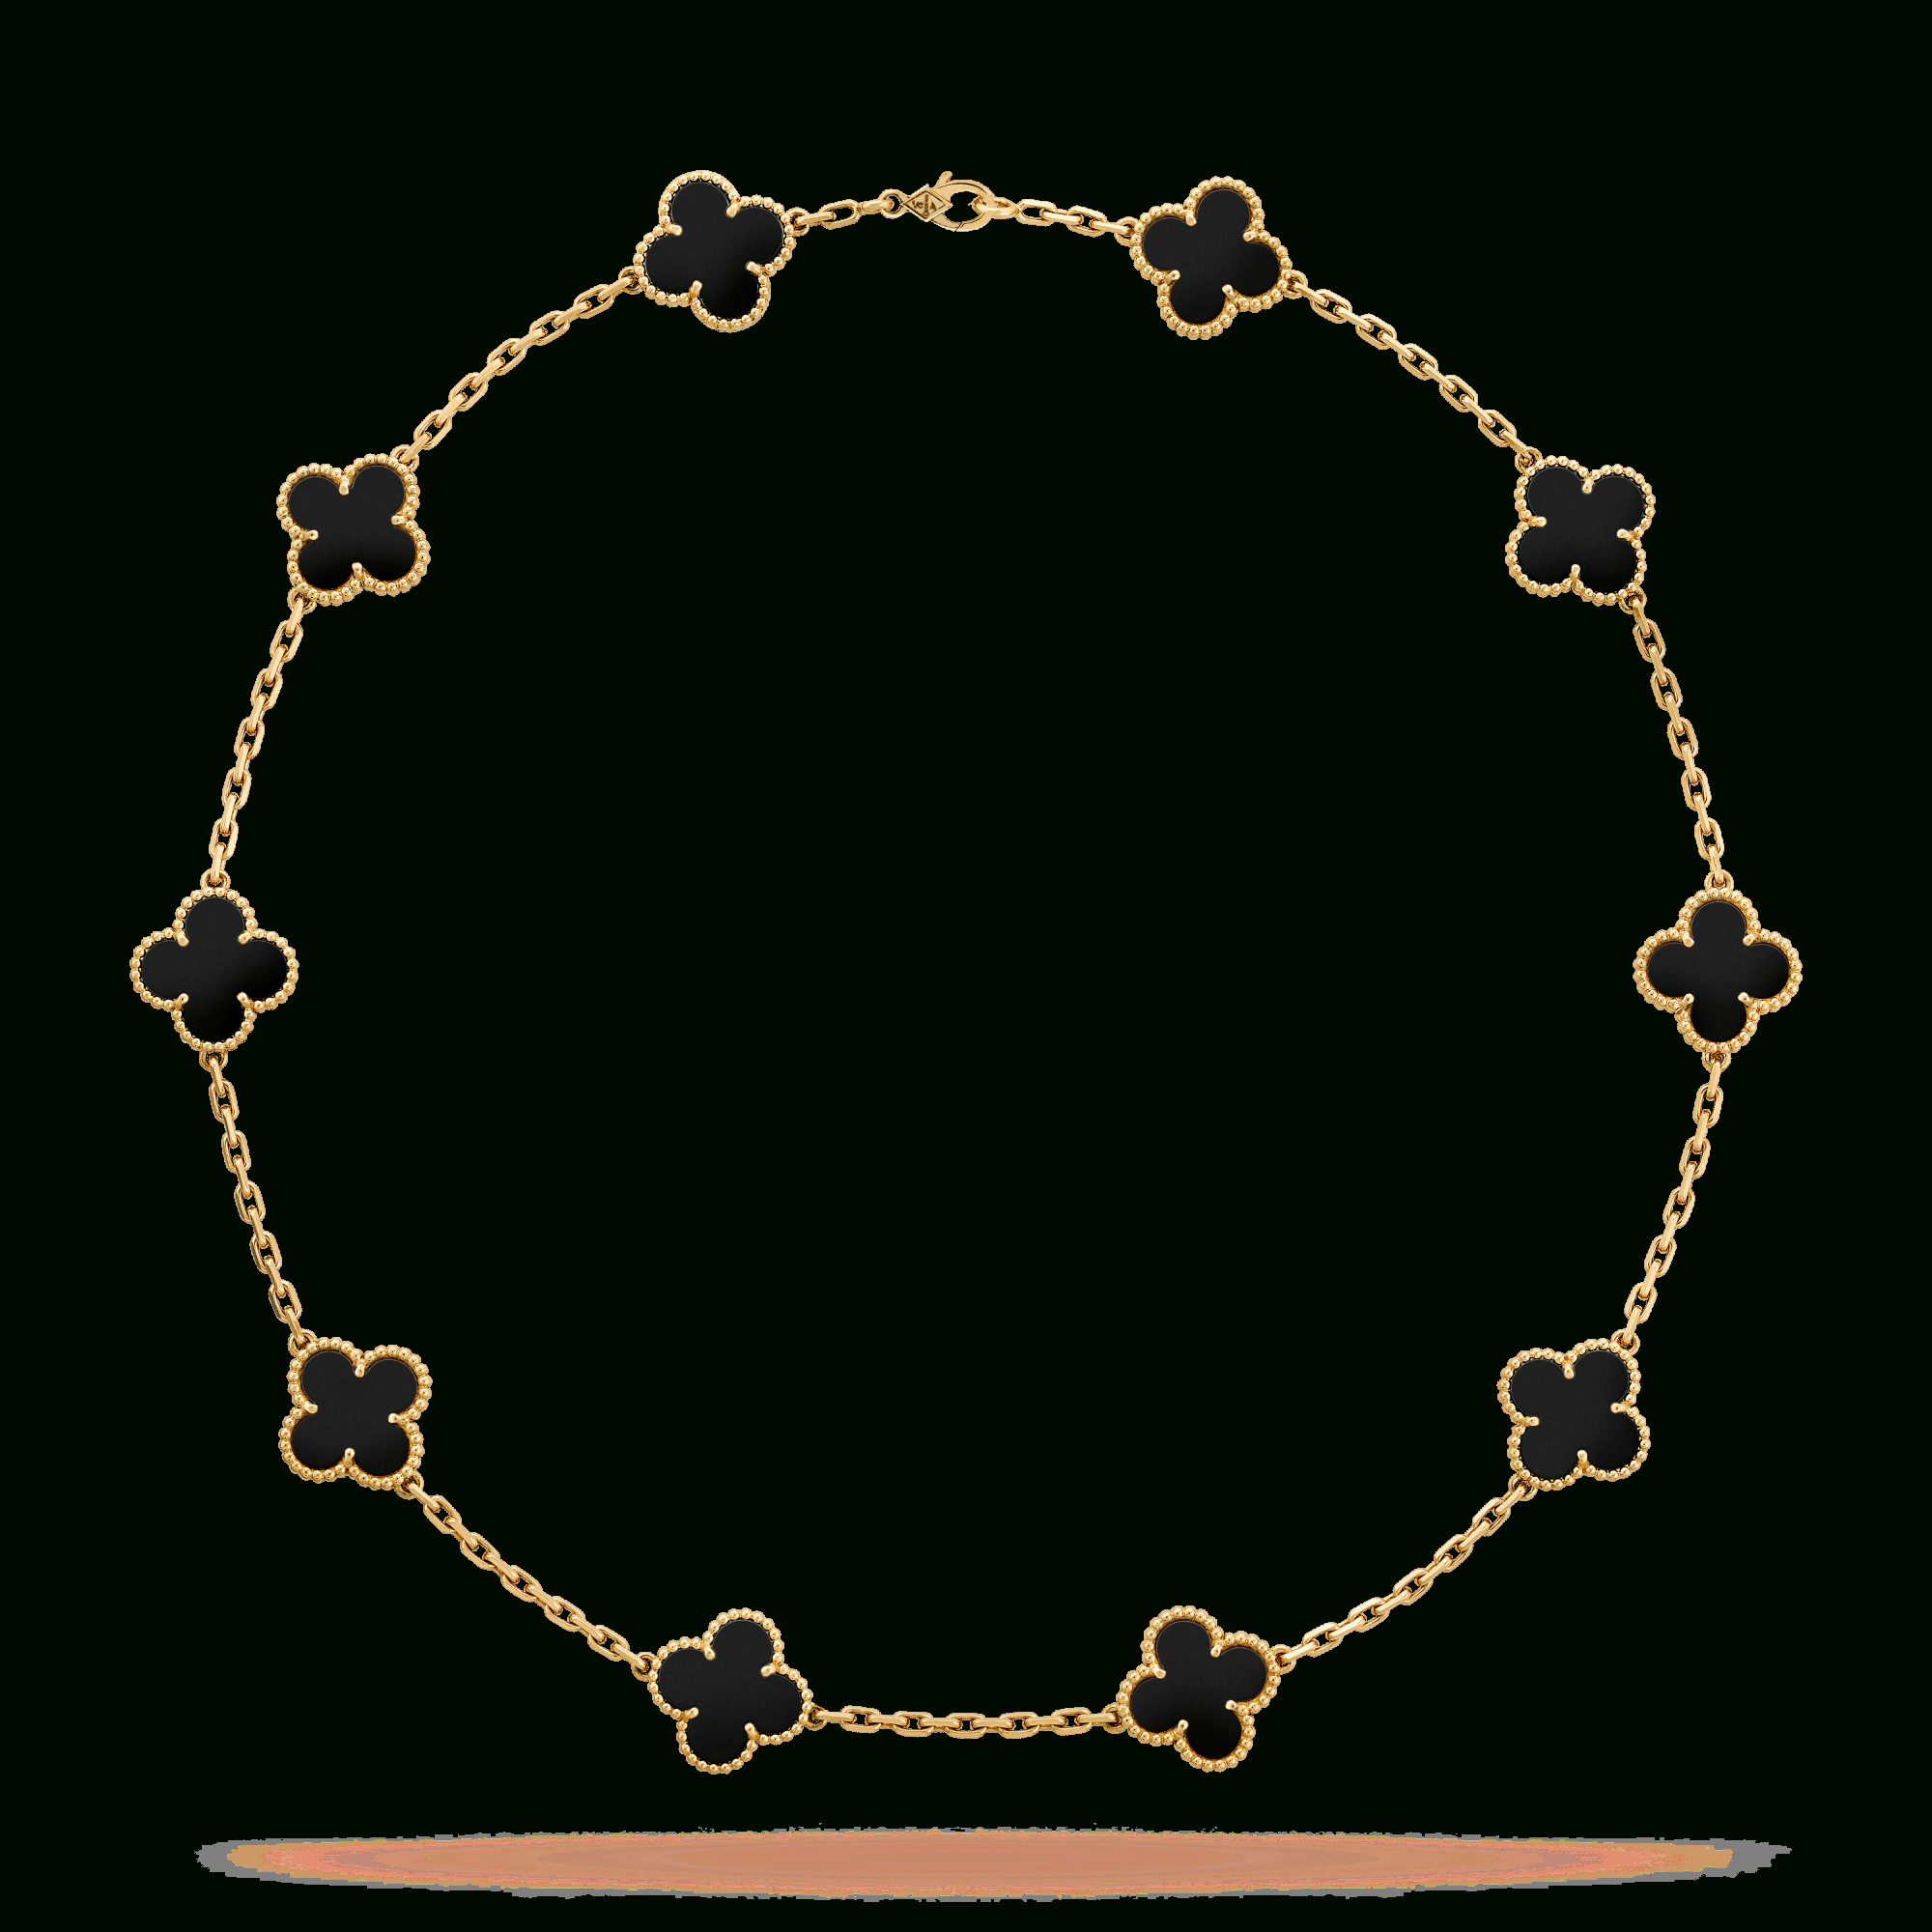 Vintage Alhambra Necklace, 10 Motifs – Vcara42700 Van Cleef & Arpels Intended For Most Current Vintage Circle Collier Necklaces (View 13 of 25)